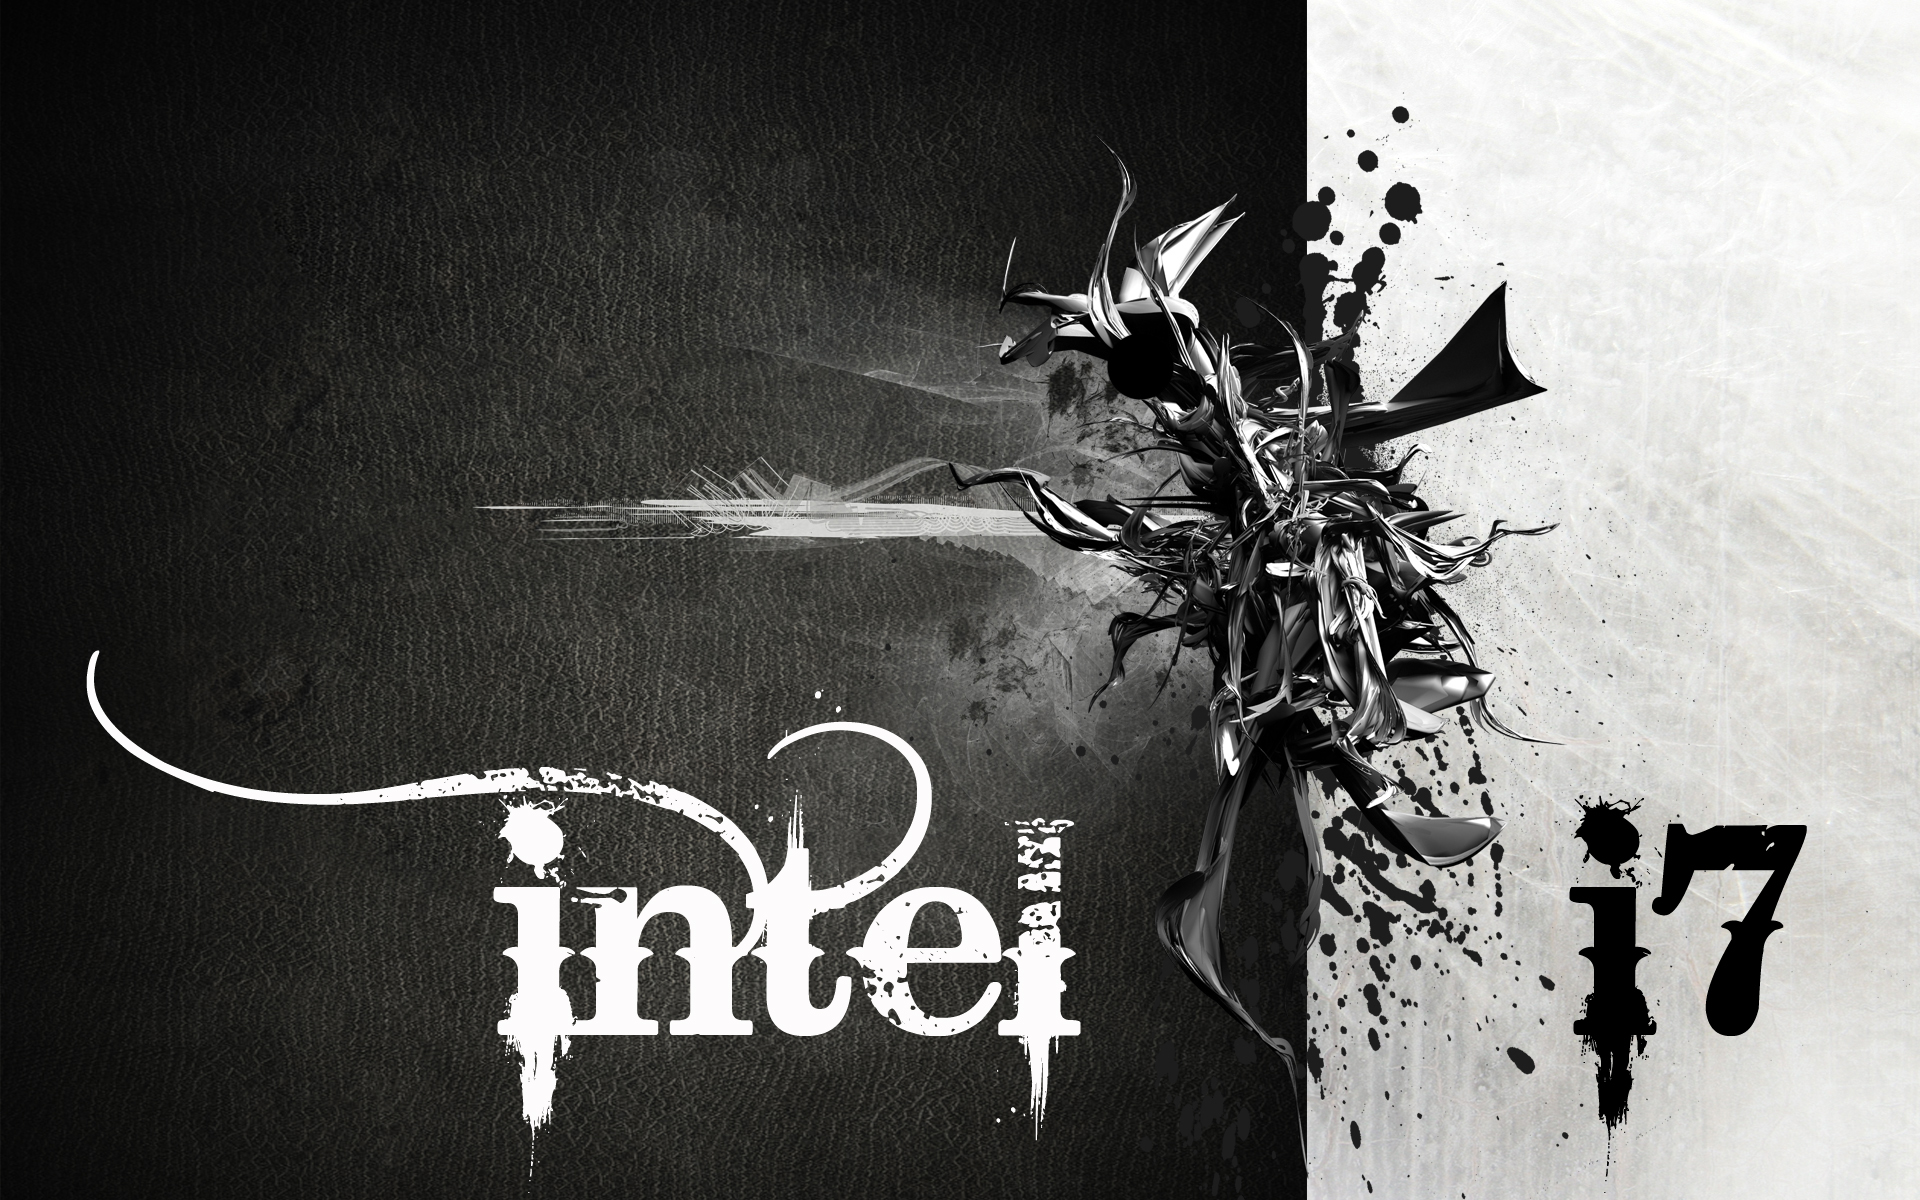 Grunge by Intel i7 Wallpapers Grunge by Intel i7 Myspace Backgrounds 1920x1200